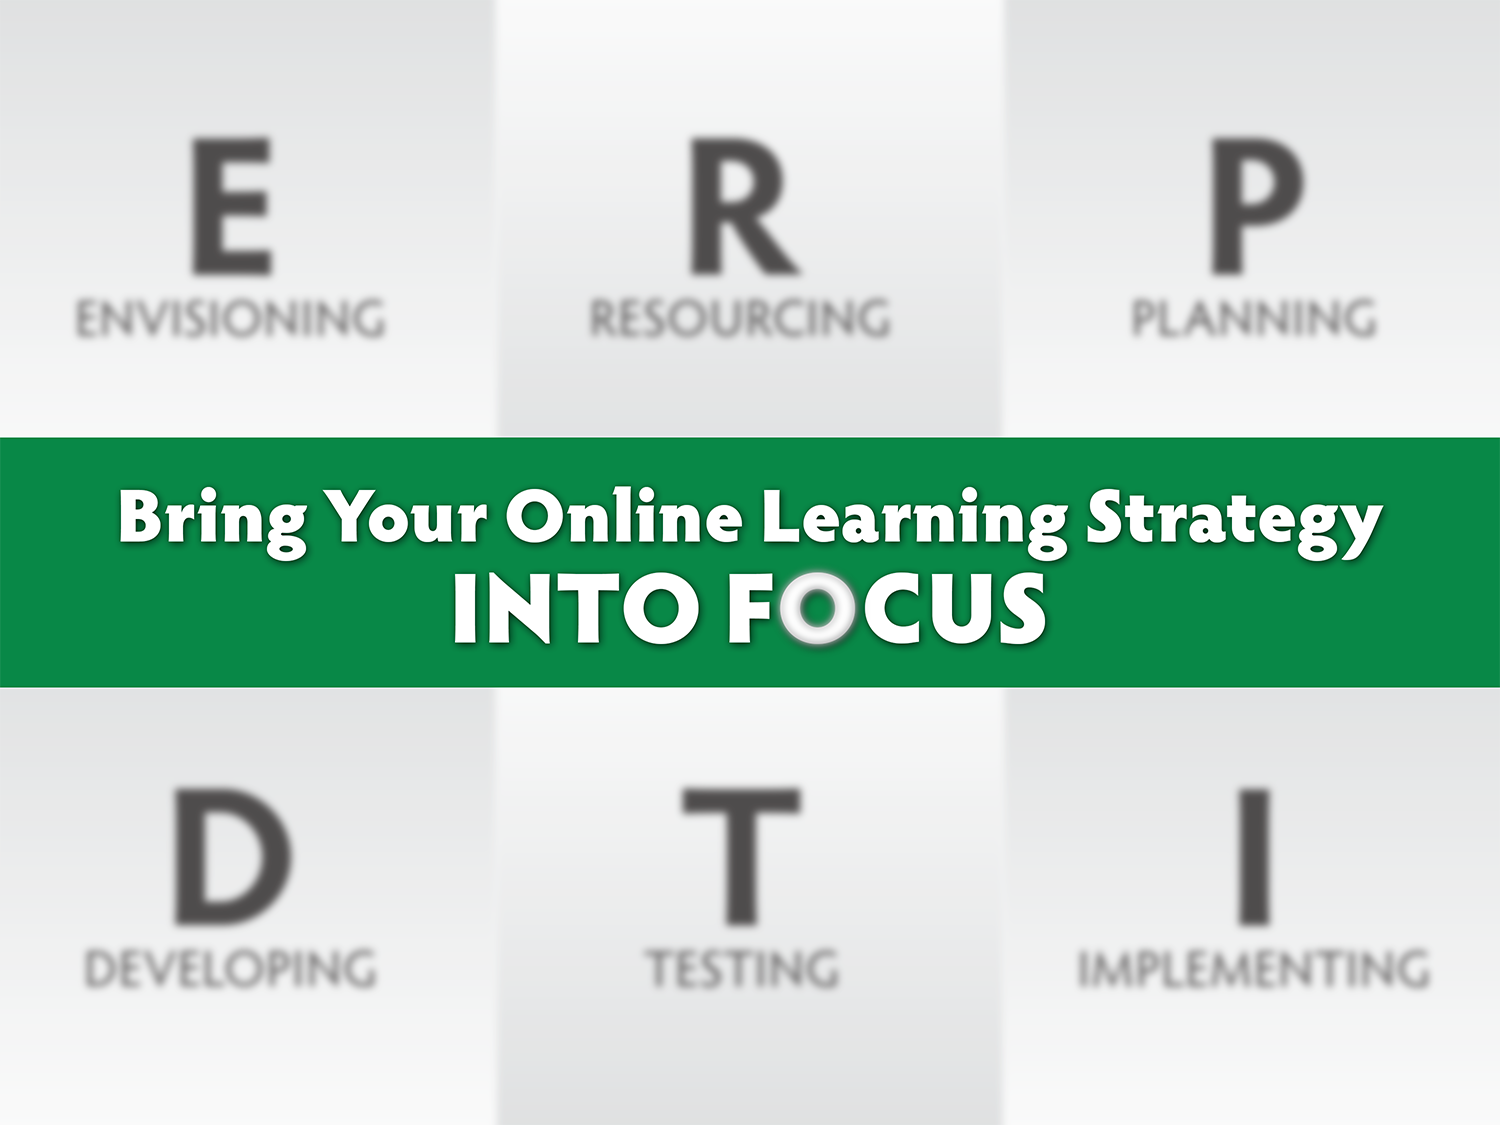 Online Learning Strategy